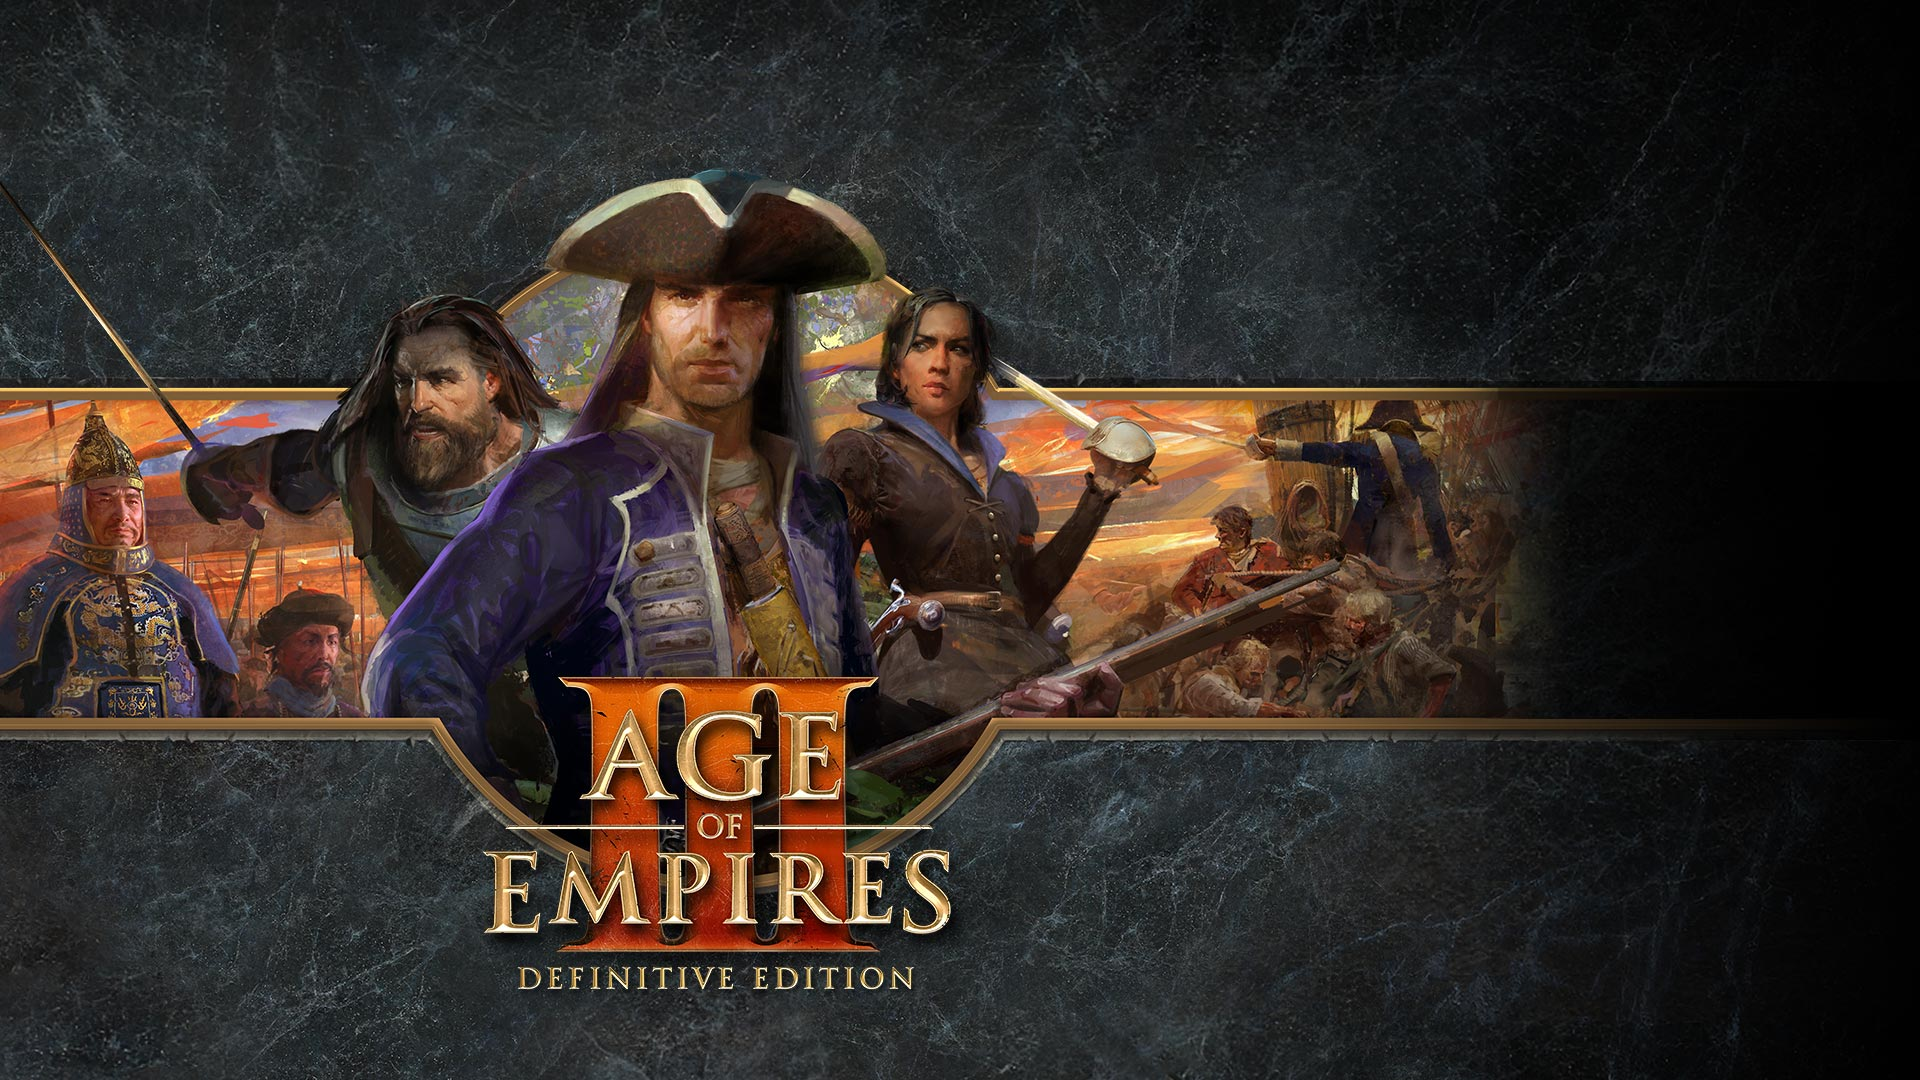 Age of Empires III: Definitive Edition, poserende personages